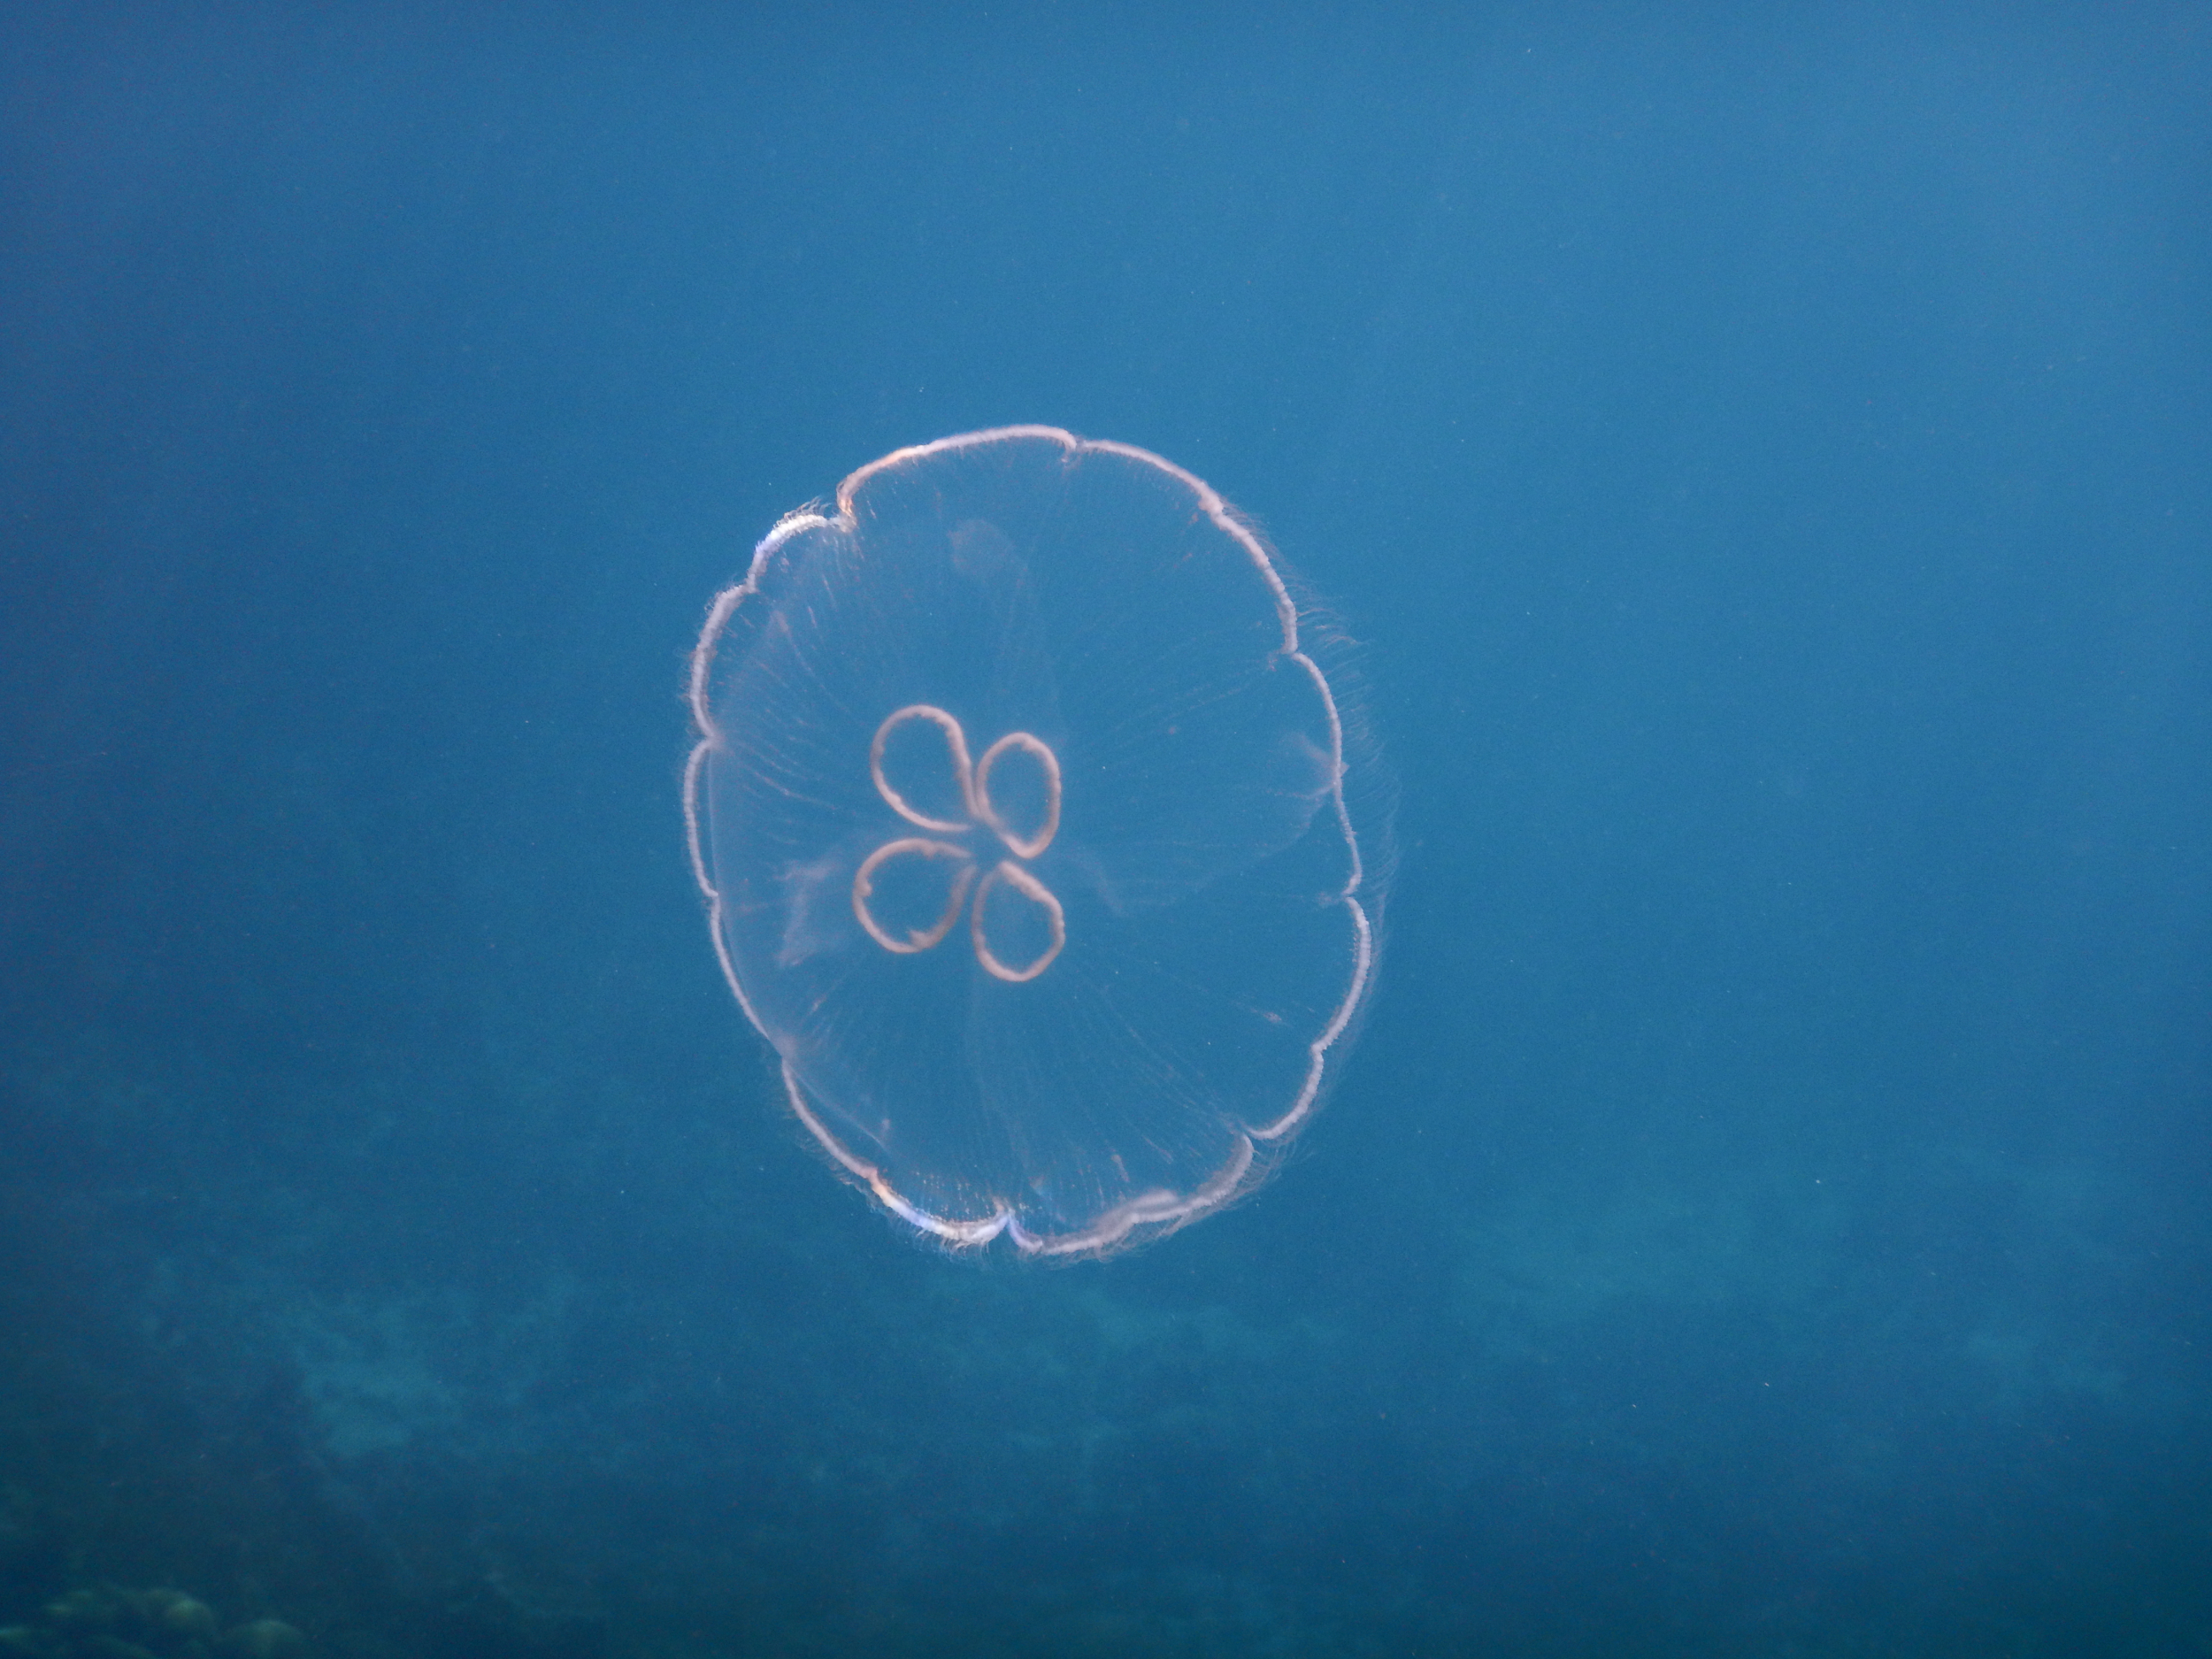 59. Jellyfish ..and you shall be called squishy